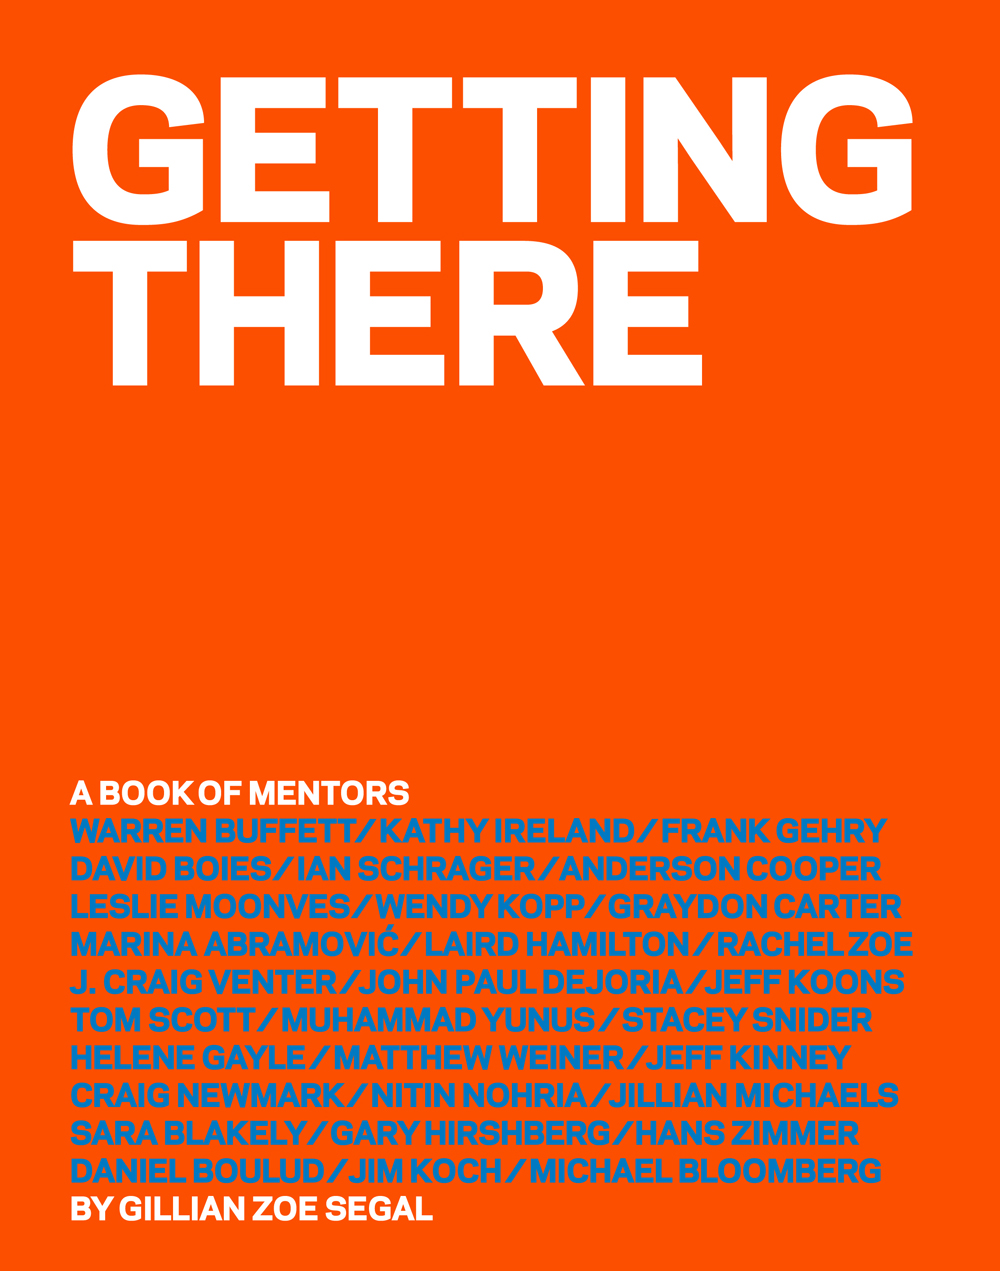 Getting-There-A-Book-of-Mentors-by-Gillian-Zoe-Segal-Published-by-Abrams-Image-©-2015-Gillian-Zoe-Segal